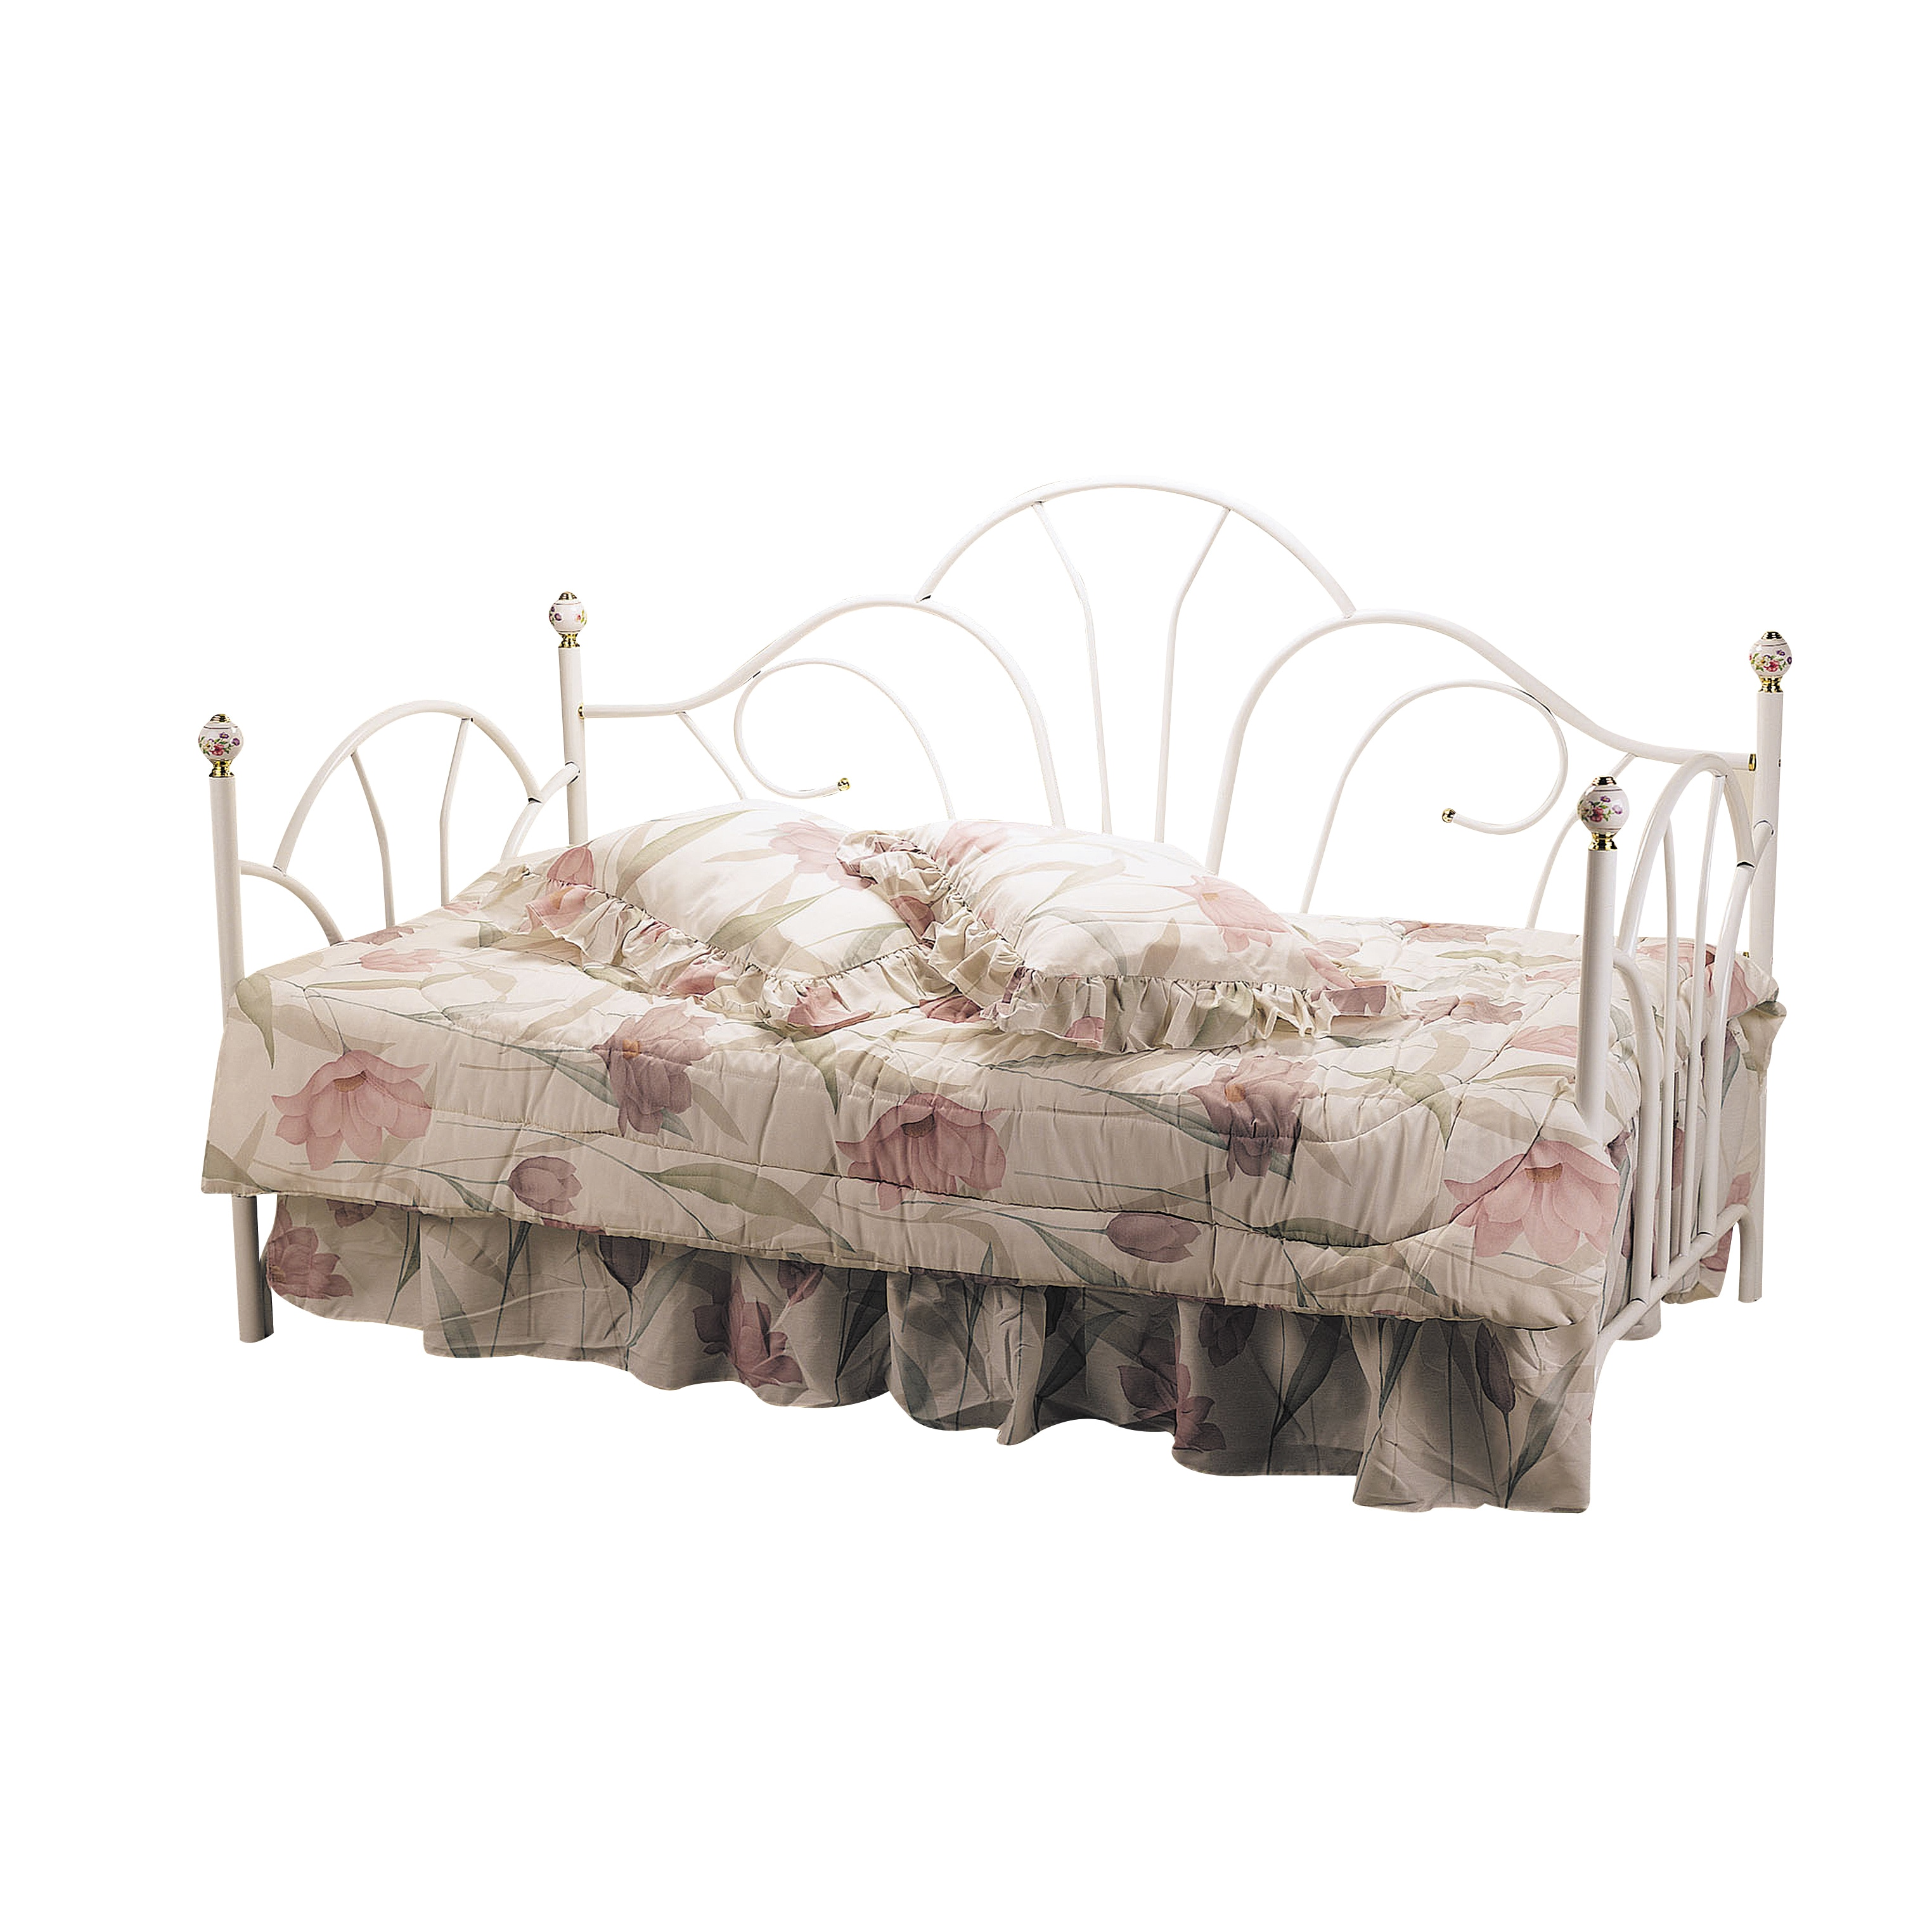 ACME Provence White Metal Daybed (Daybed, White), Size Twin